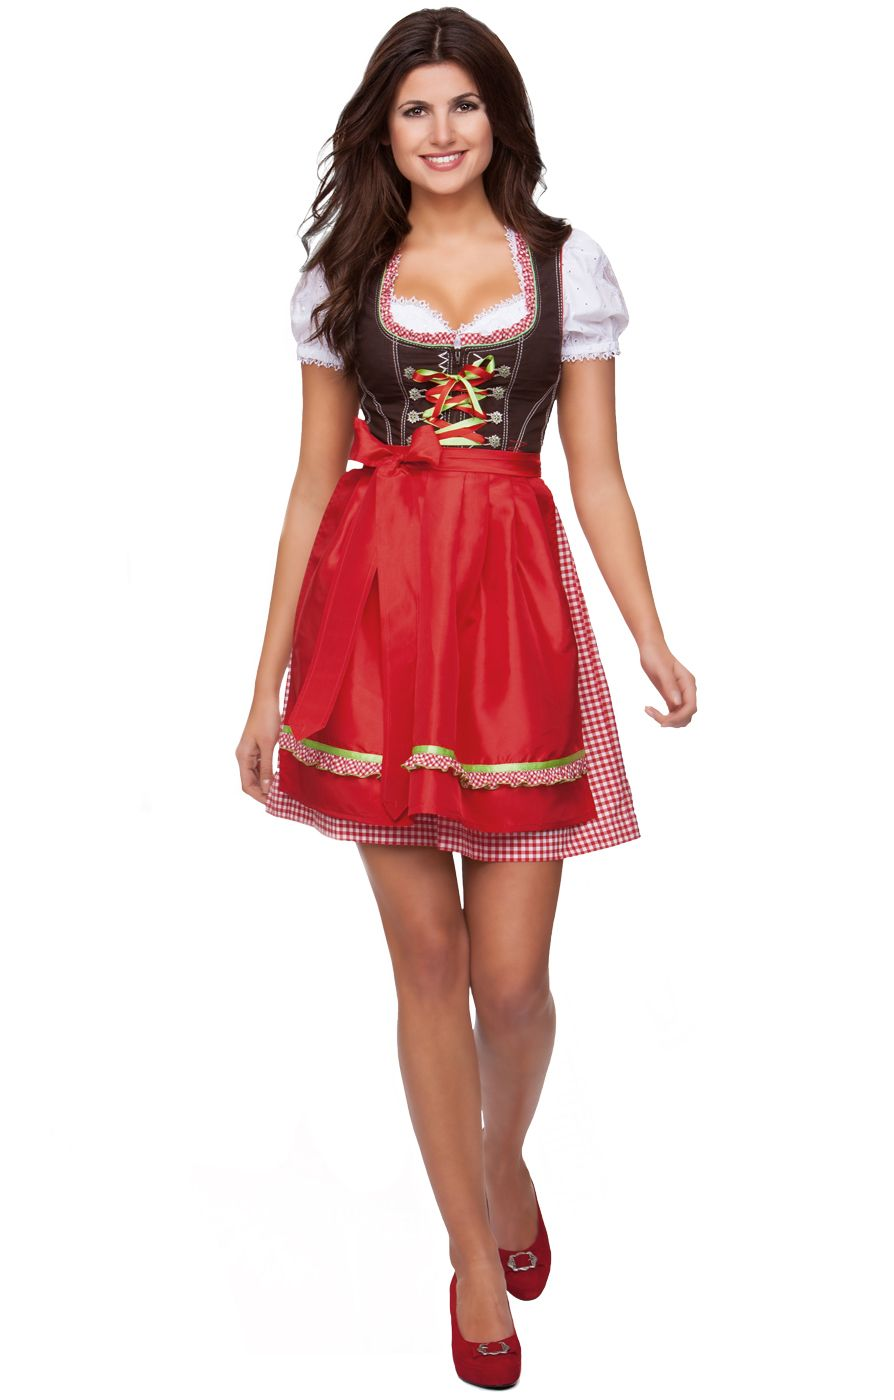 die besten 25 kurze dirndl ideen auf pinterest dirndl frisuren kurz oktoberfest frisuren f r. Black Bedroom Furniture Sets. Home Design Ideas